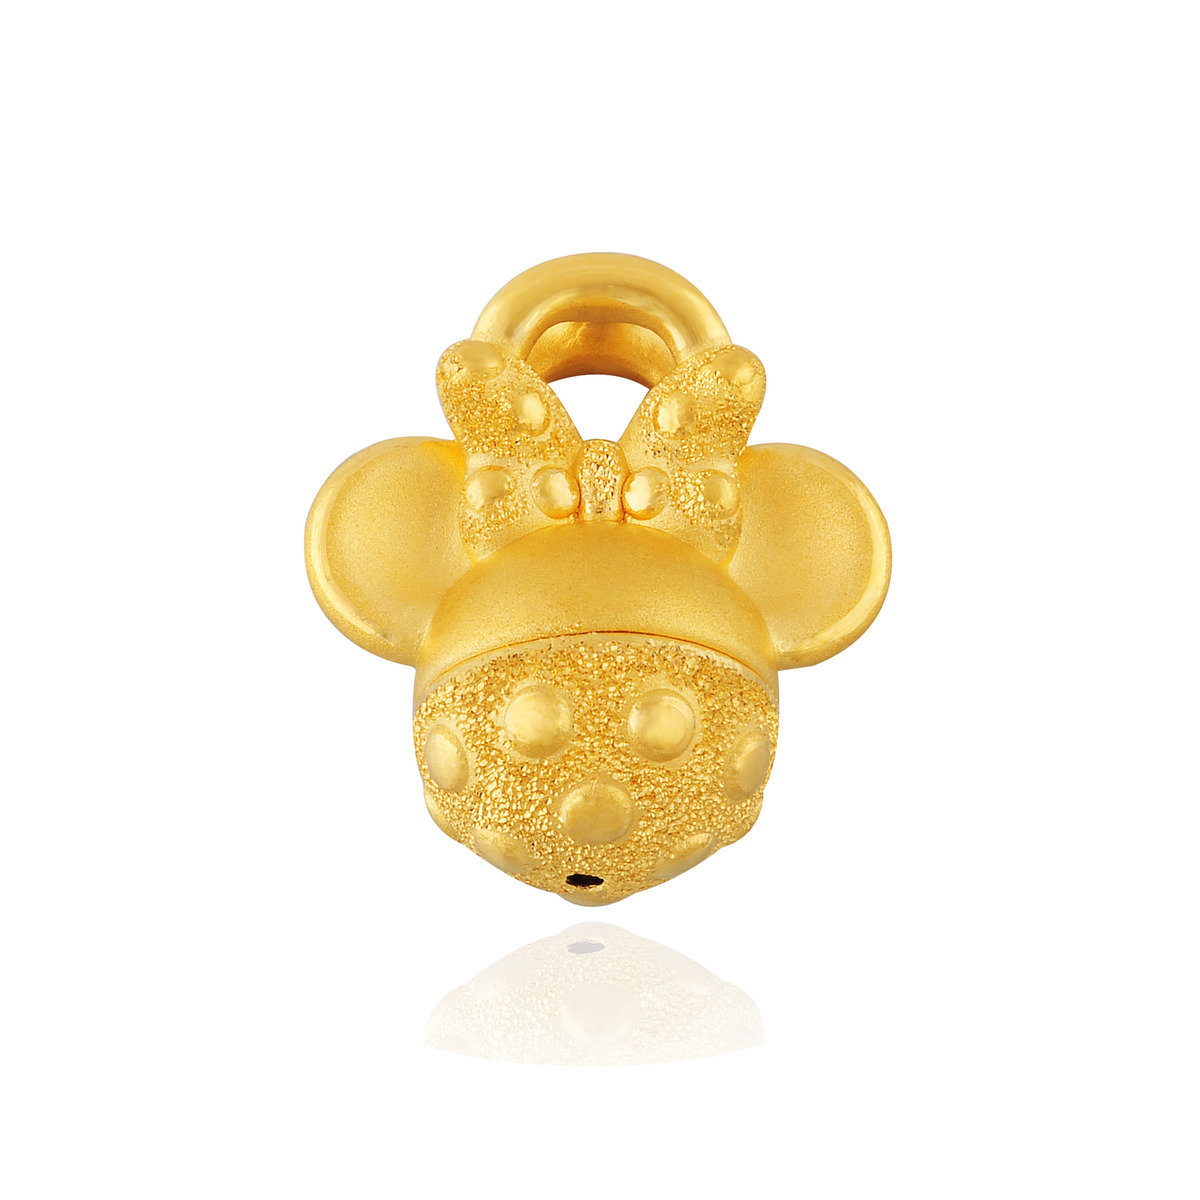 Disney Classic Collection 999 Gold Pendant